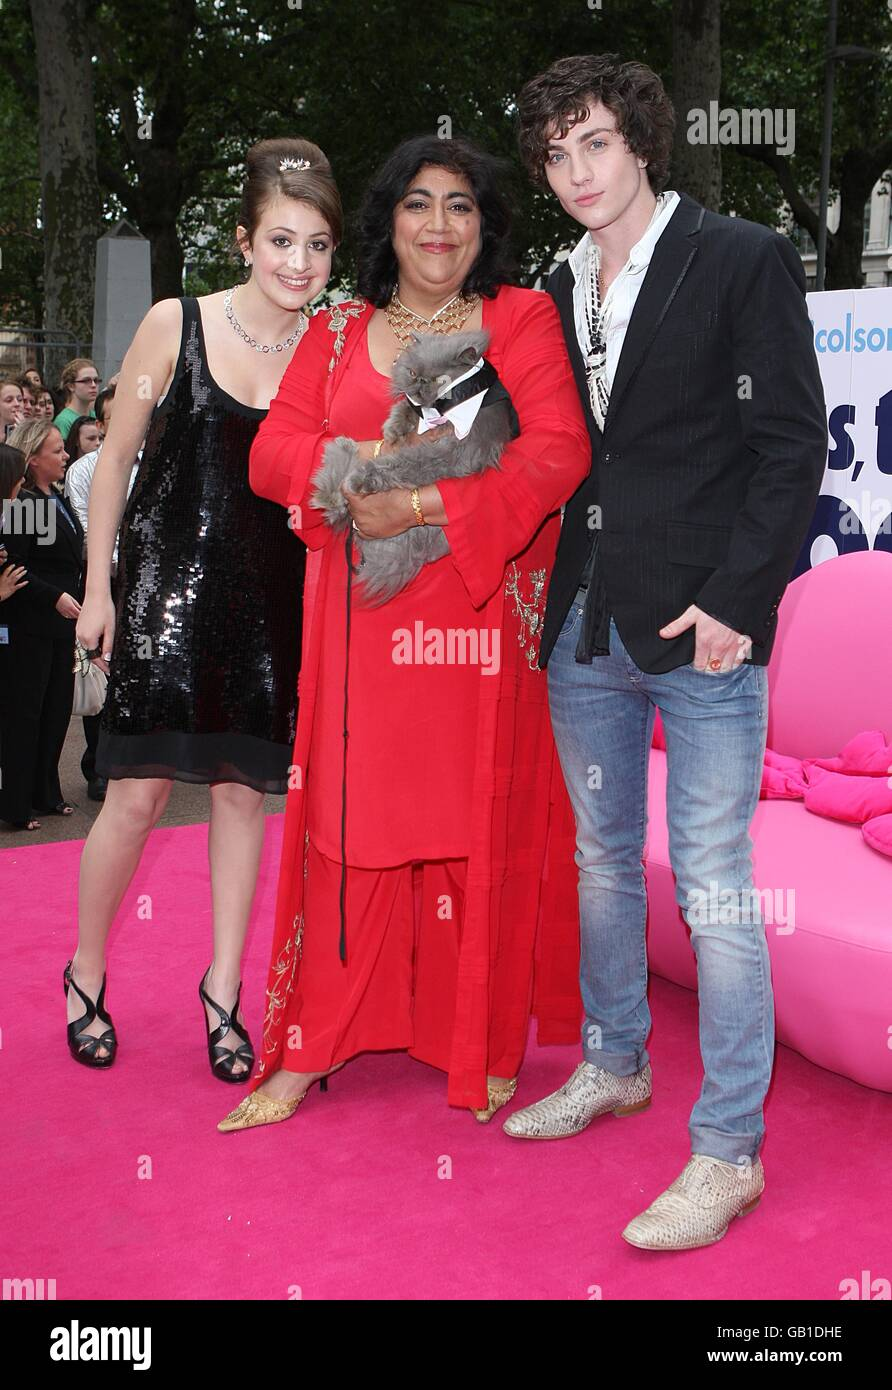 Angus Thongs And Perfect Snogging Cast angus, thongs and perfect snogging premiere - london stock